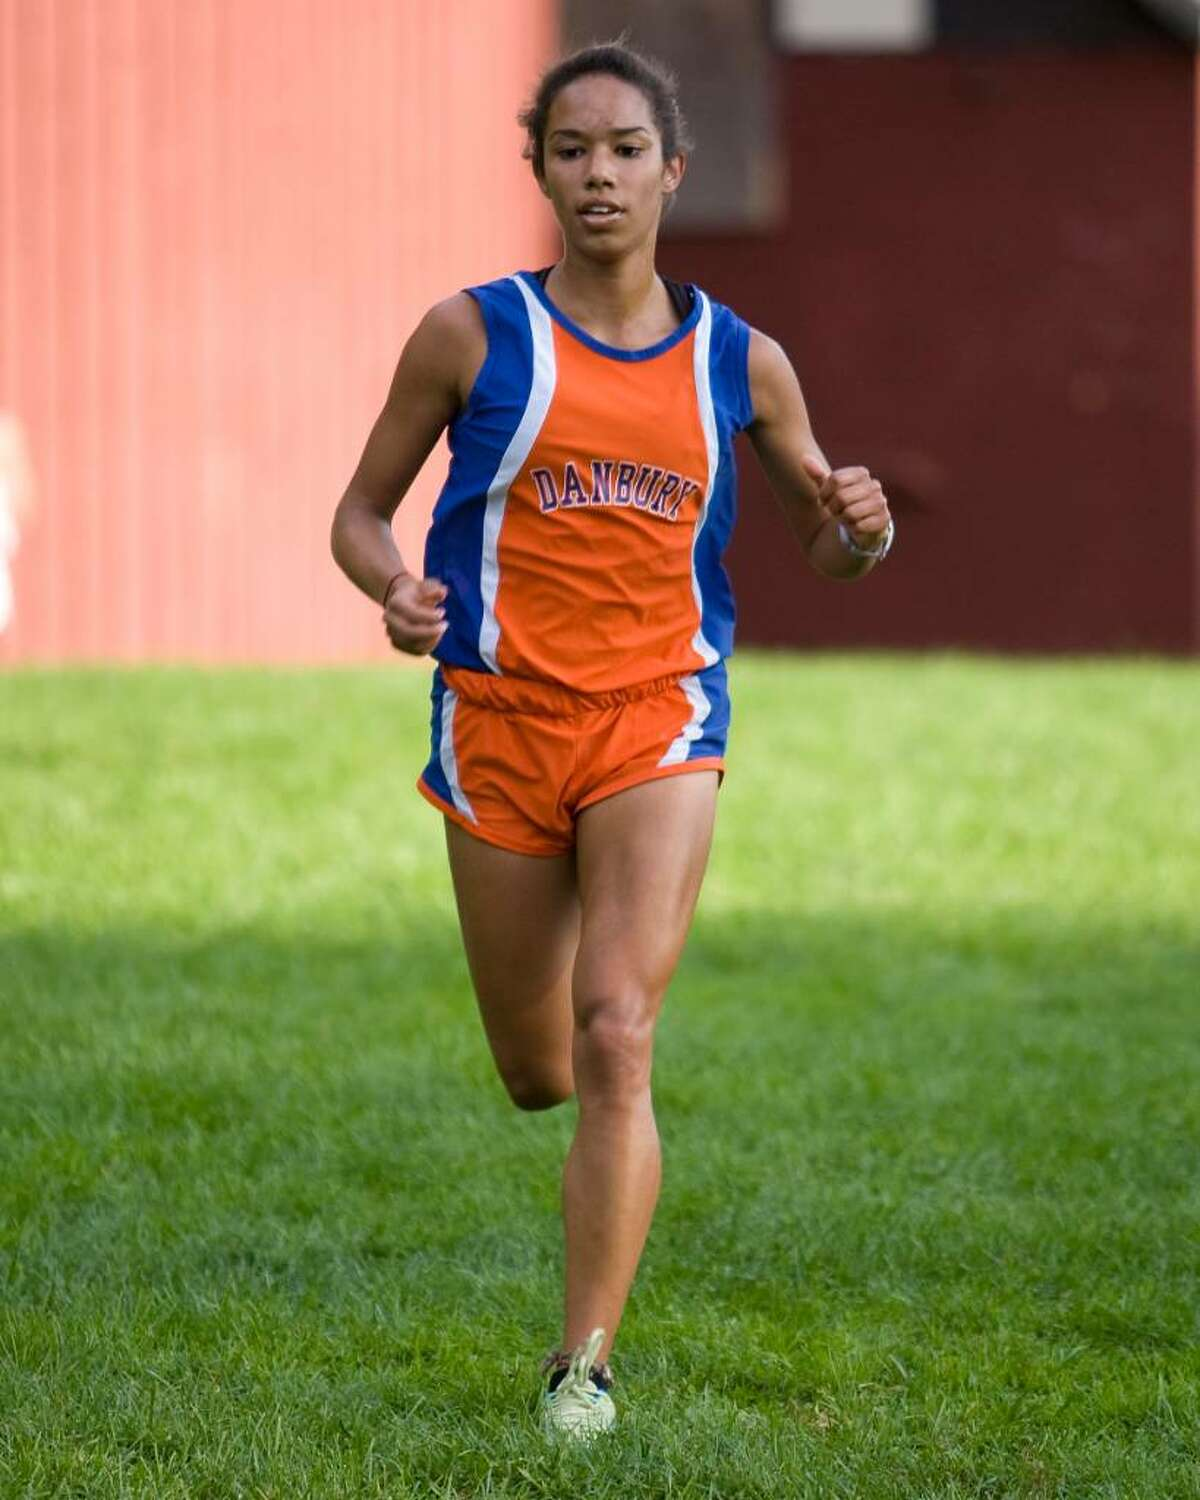 Emily Campbell's fourth place finish led the Danbury High girls in a cross country meet Tuesday at Tarrywile Park in Danbury.